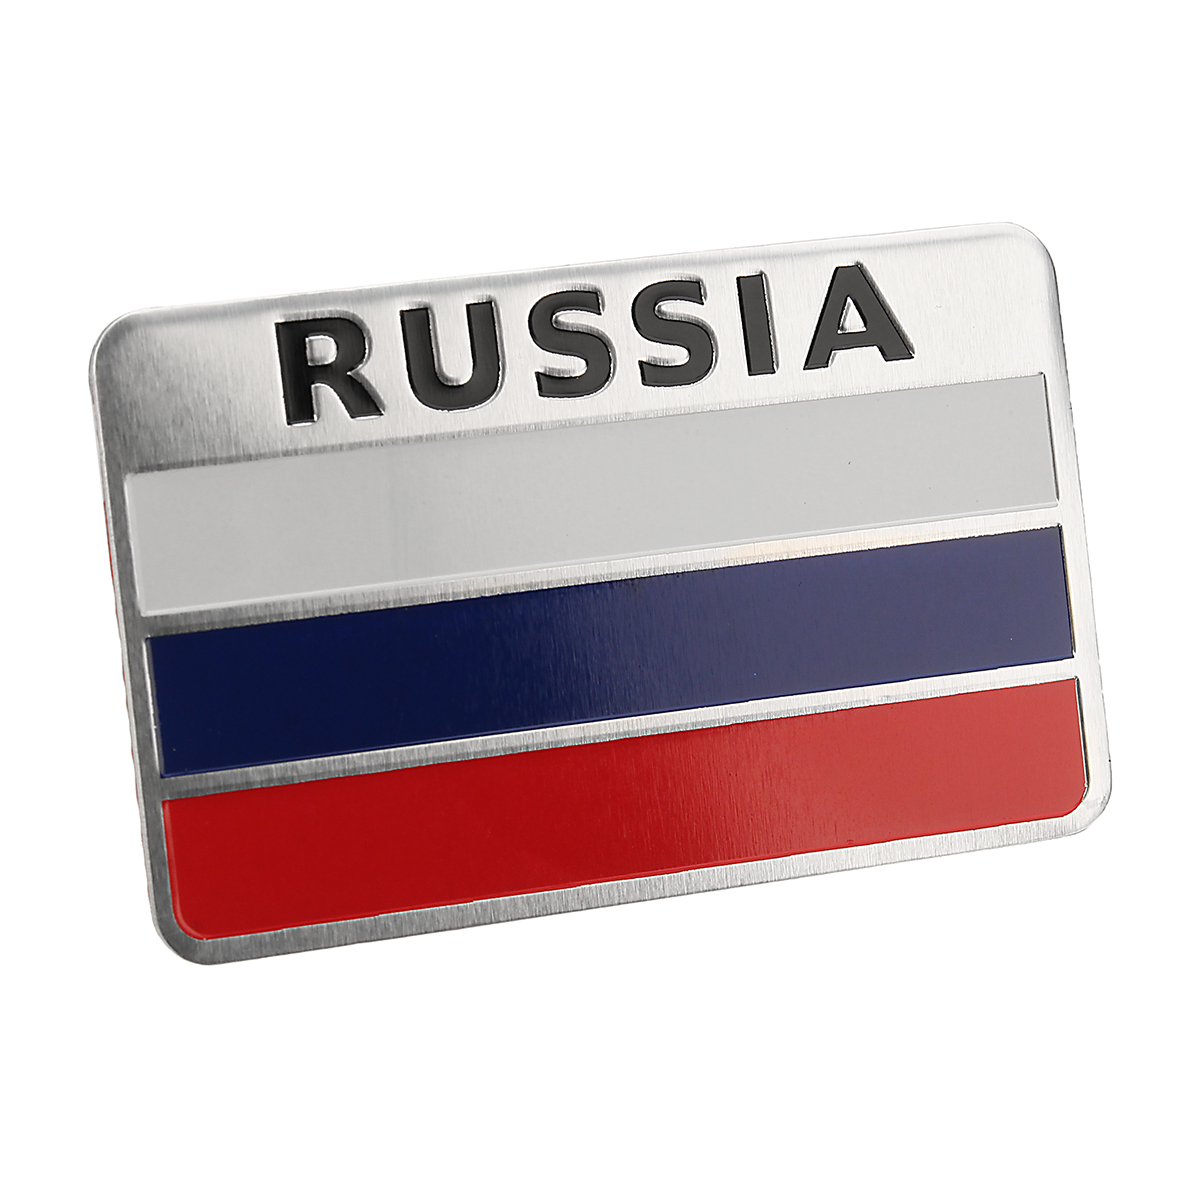 New 3D Aluminum Alloy Russia Flag Car Auto Sticker Decal Emblem 8 X 5cm Cars Styling Body Auto Accessories  Car Stickers